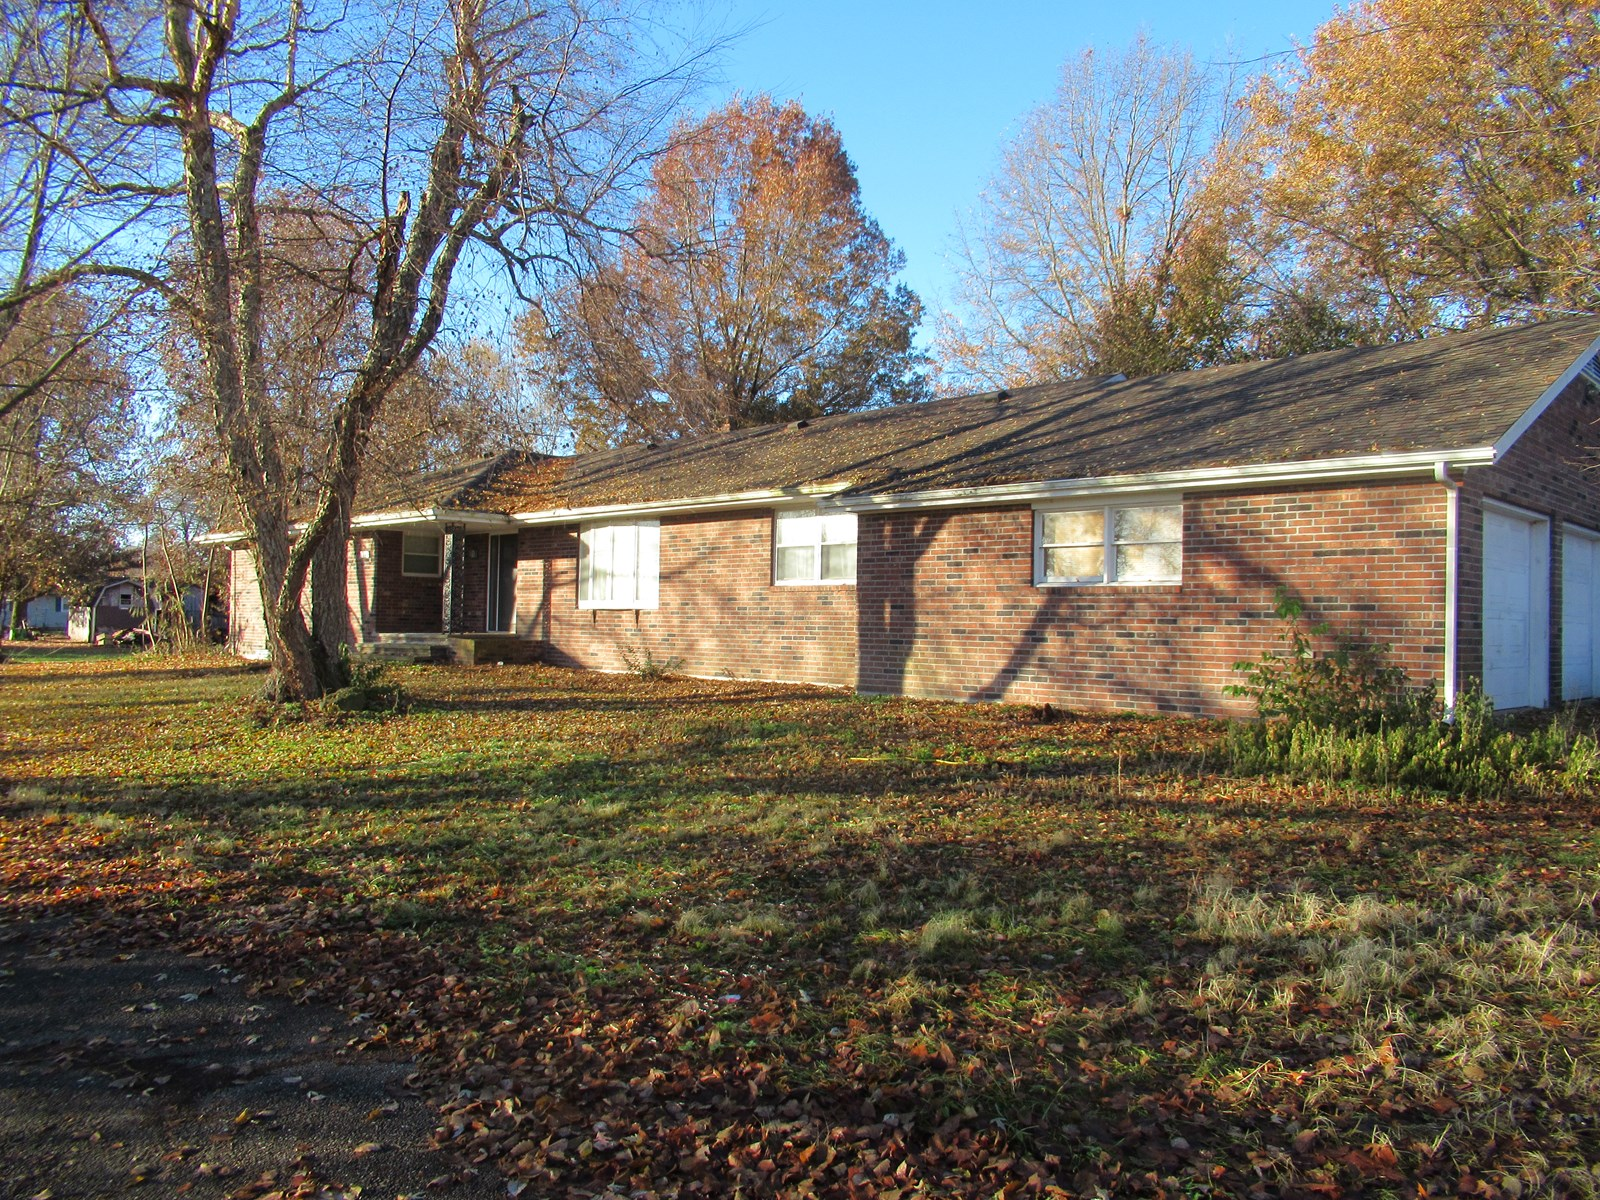 Home For Sale in Lockwood, Mo.